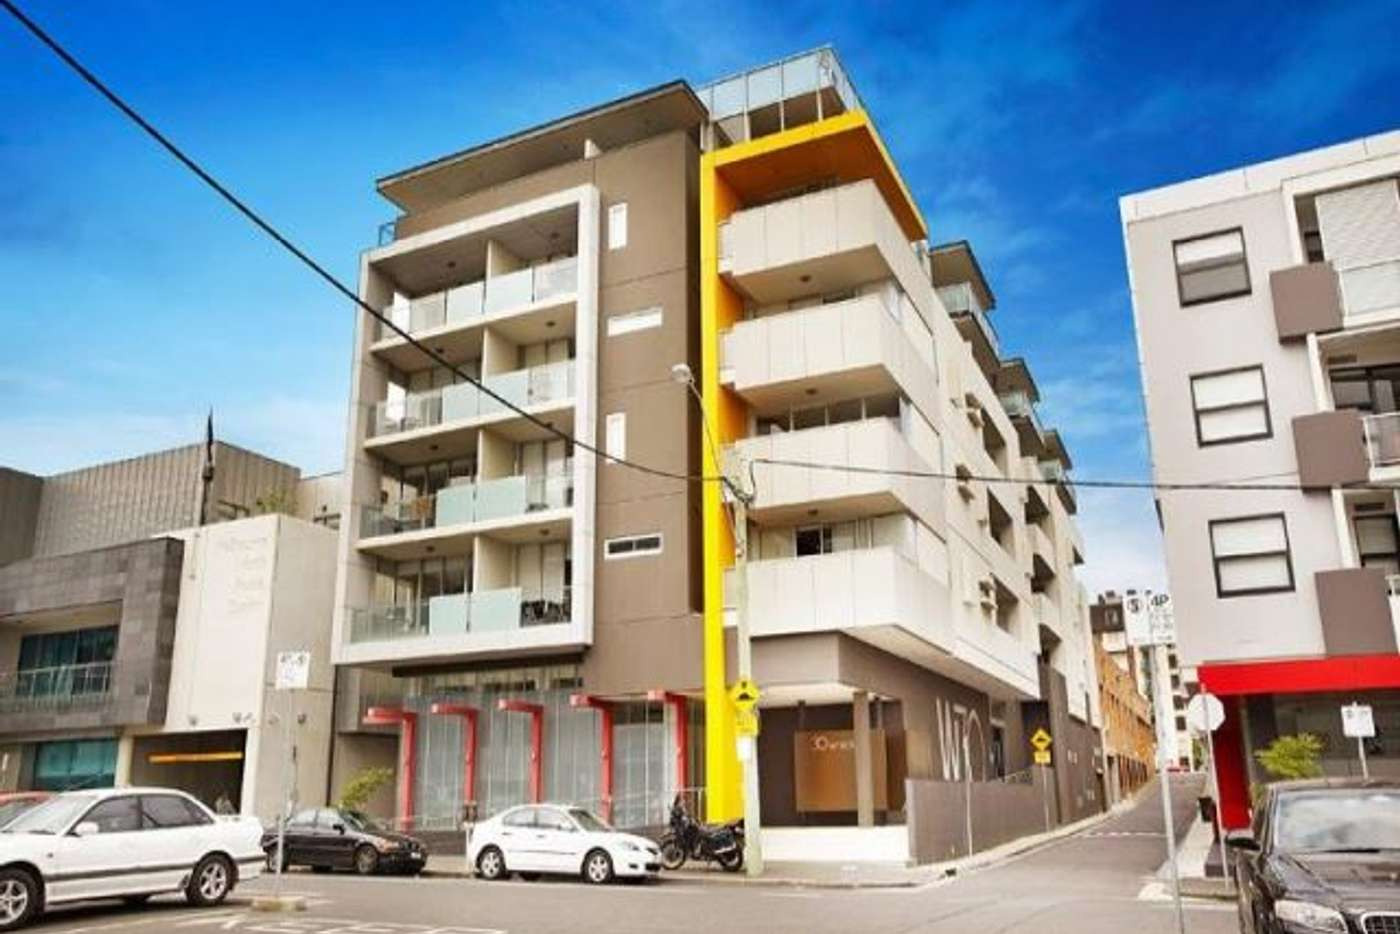 Main view of Homely apartment listing, 107/30 Wreckyn Street, North Melbourne VIC 3051